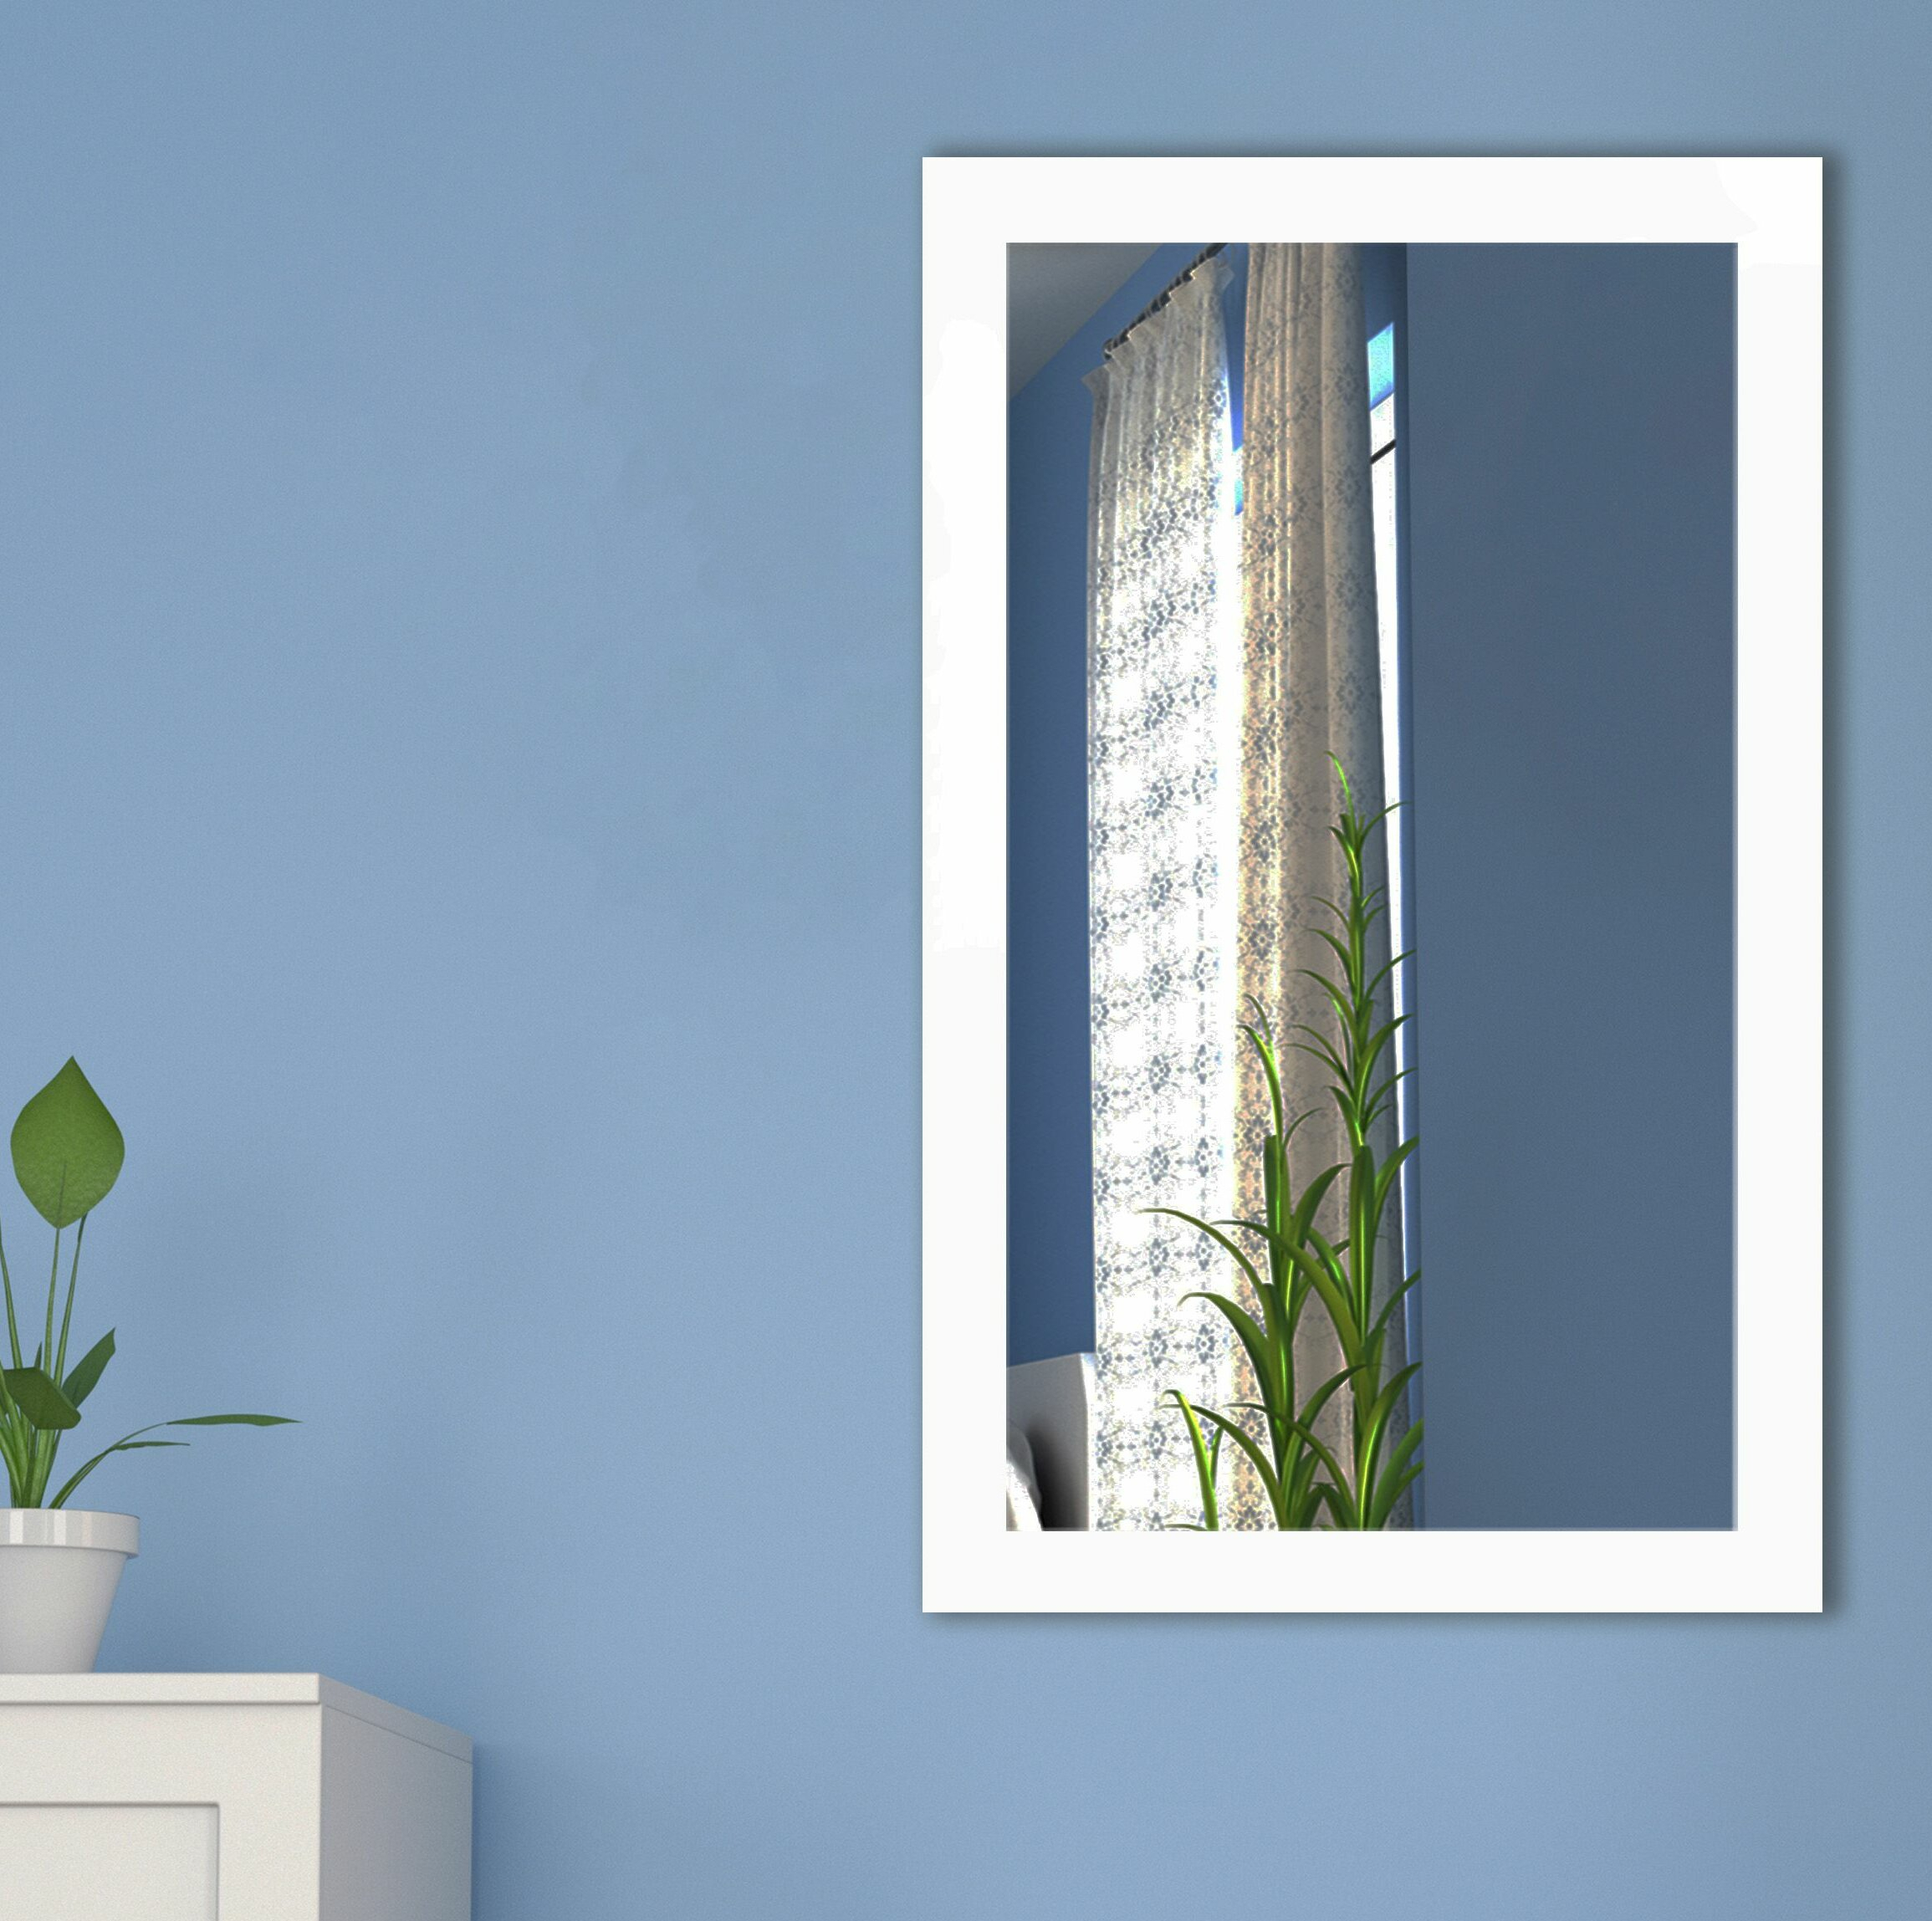 Framed Wall & Accent Mirrors   Allmodern Regarding American Made Accent Wall Mirrors (View 9 of 20)